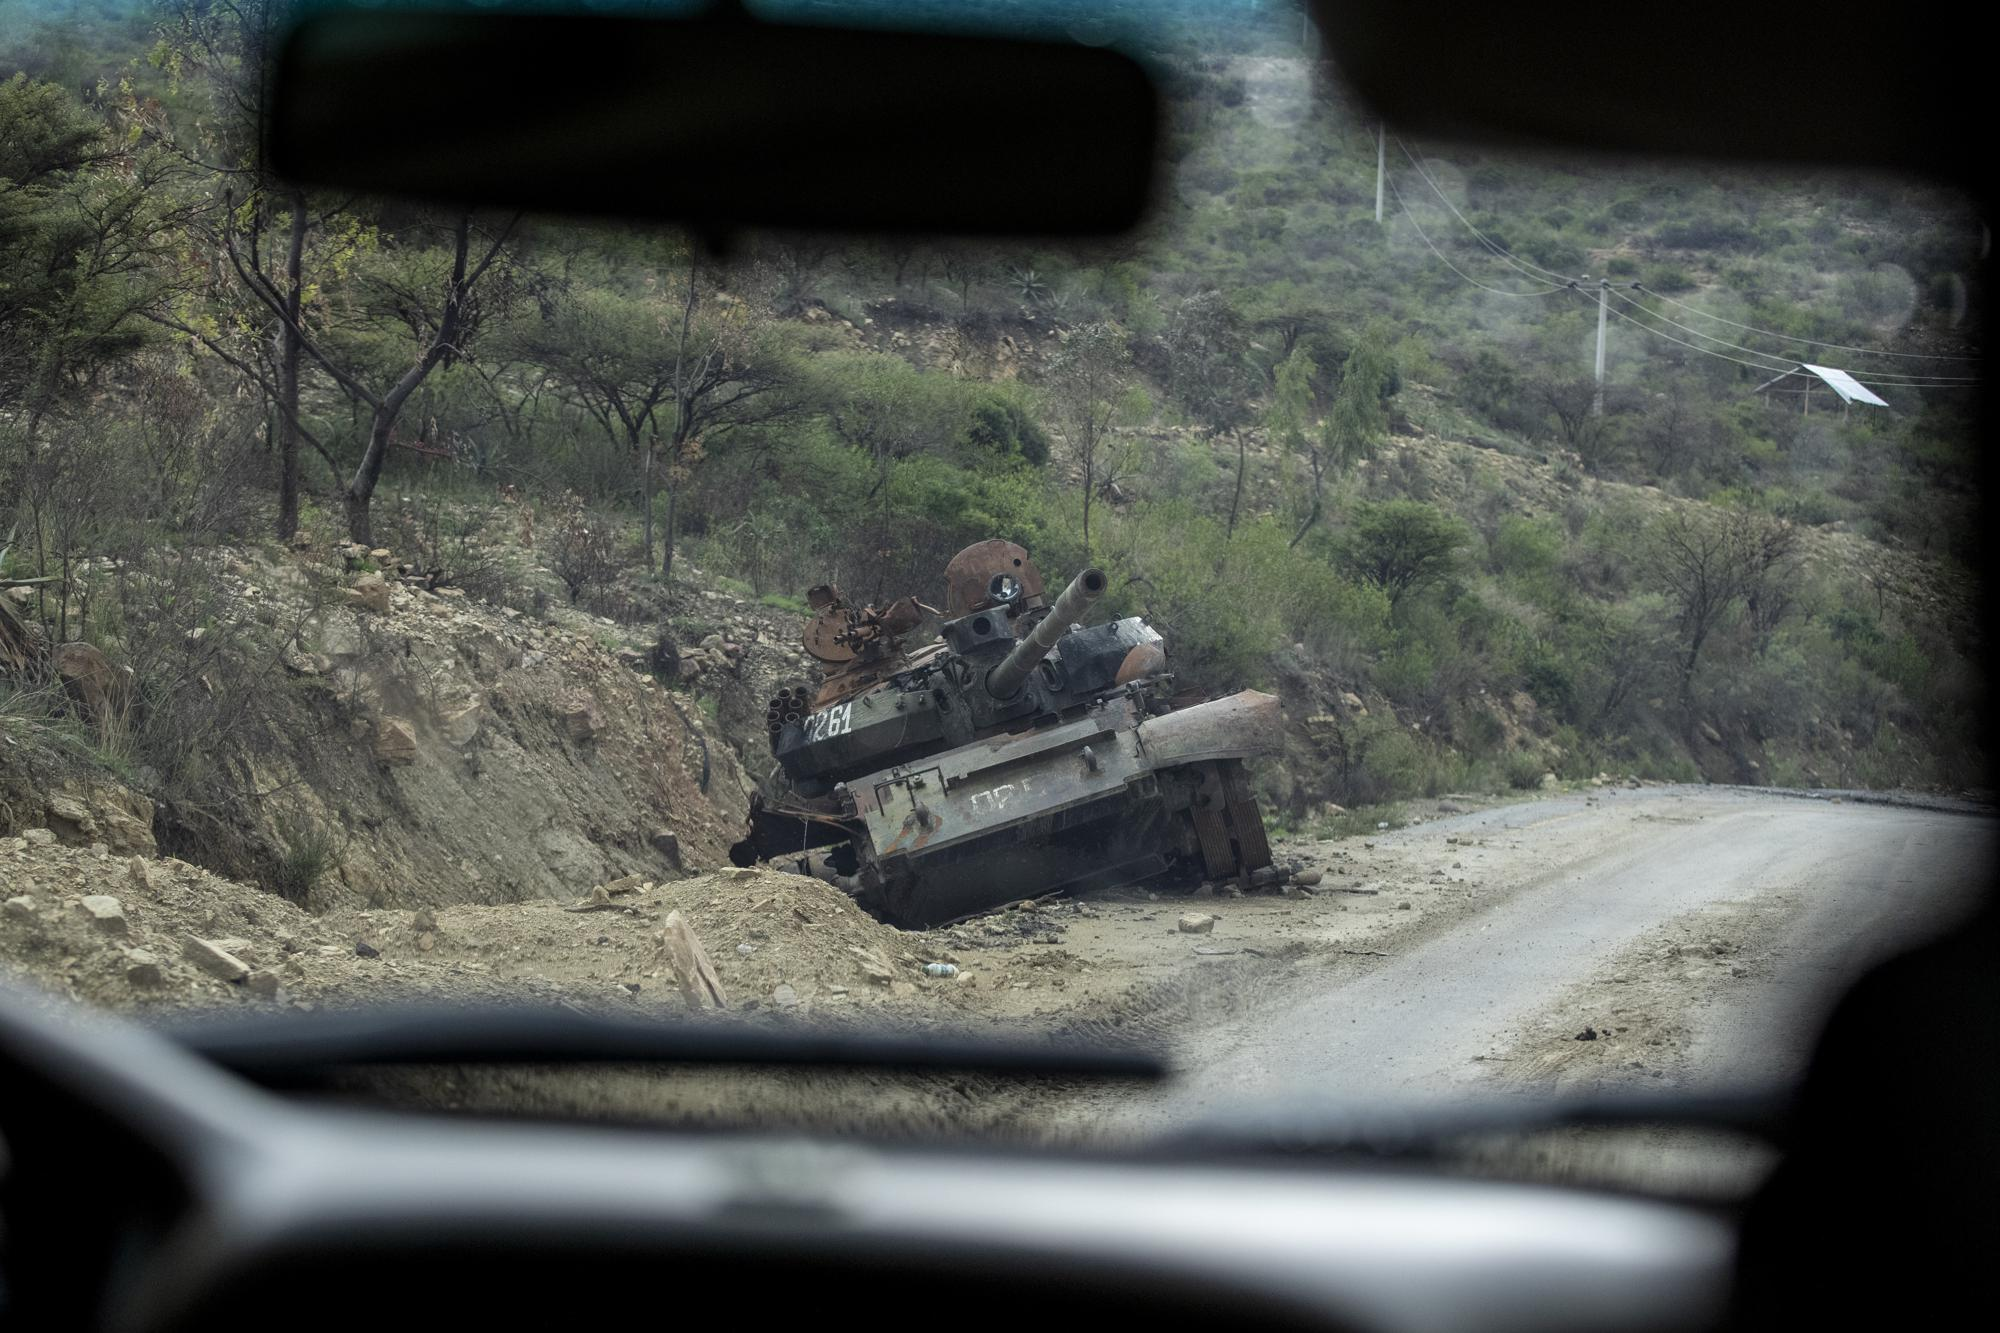 A destroyed tank sits by the side of a road leading to Abi Adi, in the Tigray region of northern Ethiopia, on Tuesday, May 11, 2021. The Tigray People's Liberation Front was on top of a coalition that ruled Ethiopia for nearly three decades. That changed in 2018, when Prime Minister Abiy Ahmed rose to power as a reformist. Abiy alienated the TPLF with efforts to make peace with its archenemy, Eritrea, and rid the federal government of corruption. (AP Photo/Ben Curtis)